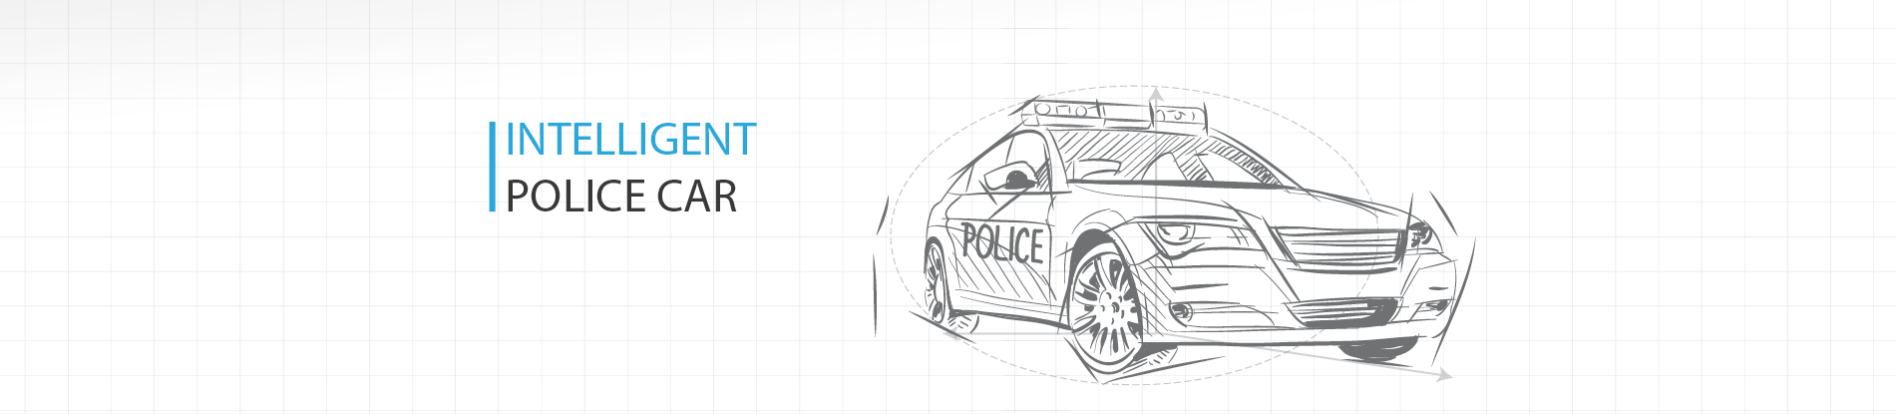 intelligent police car1